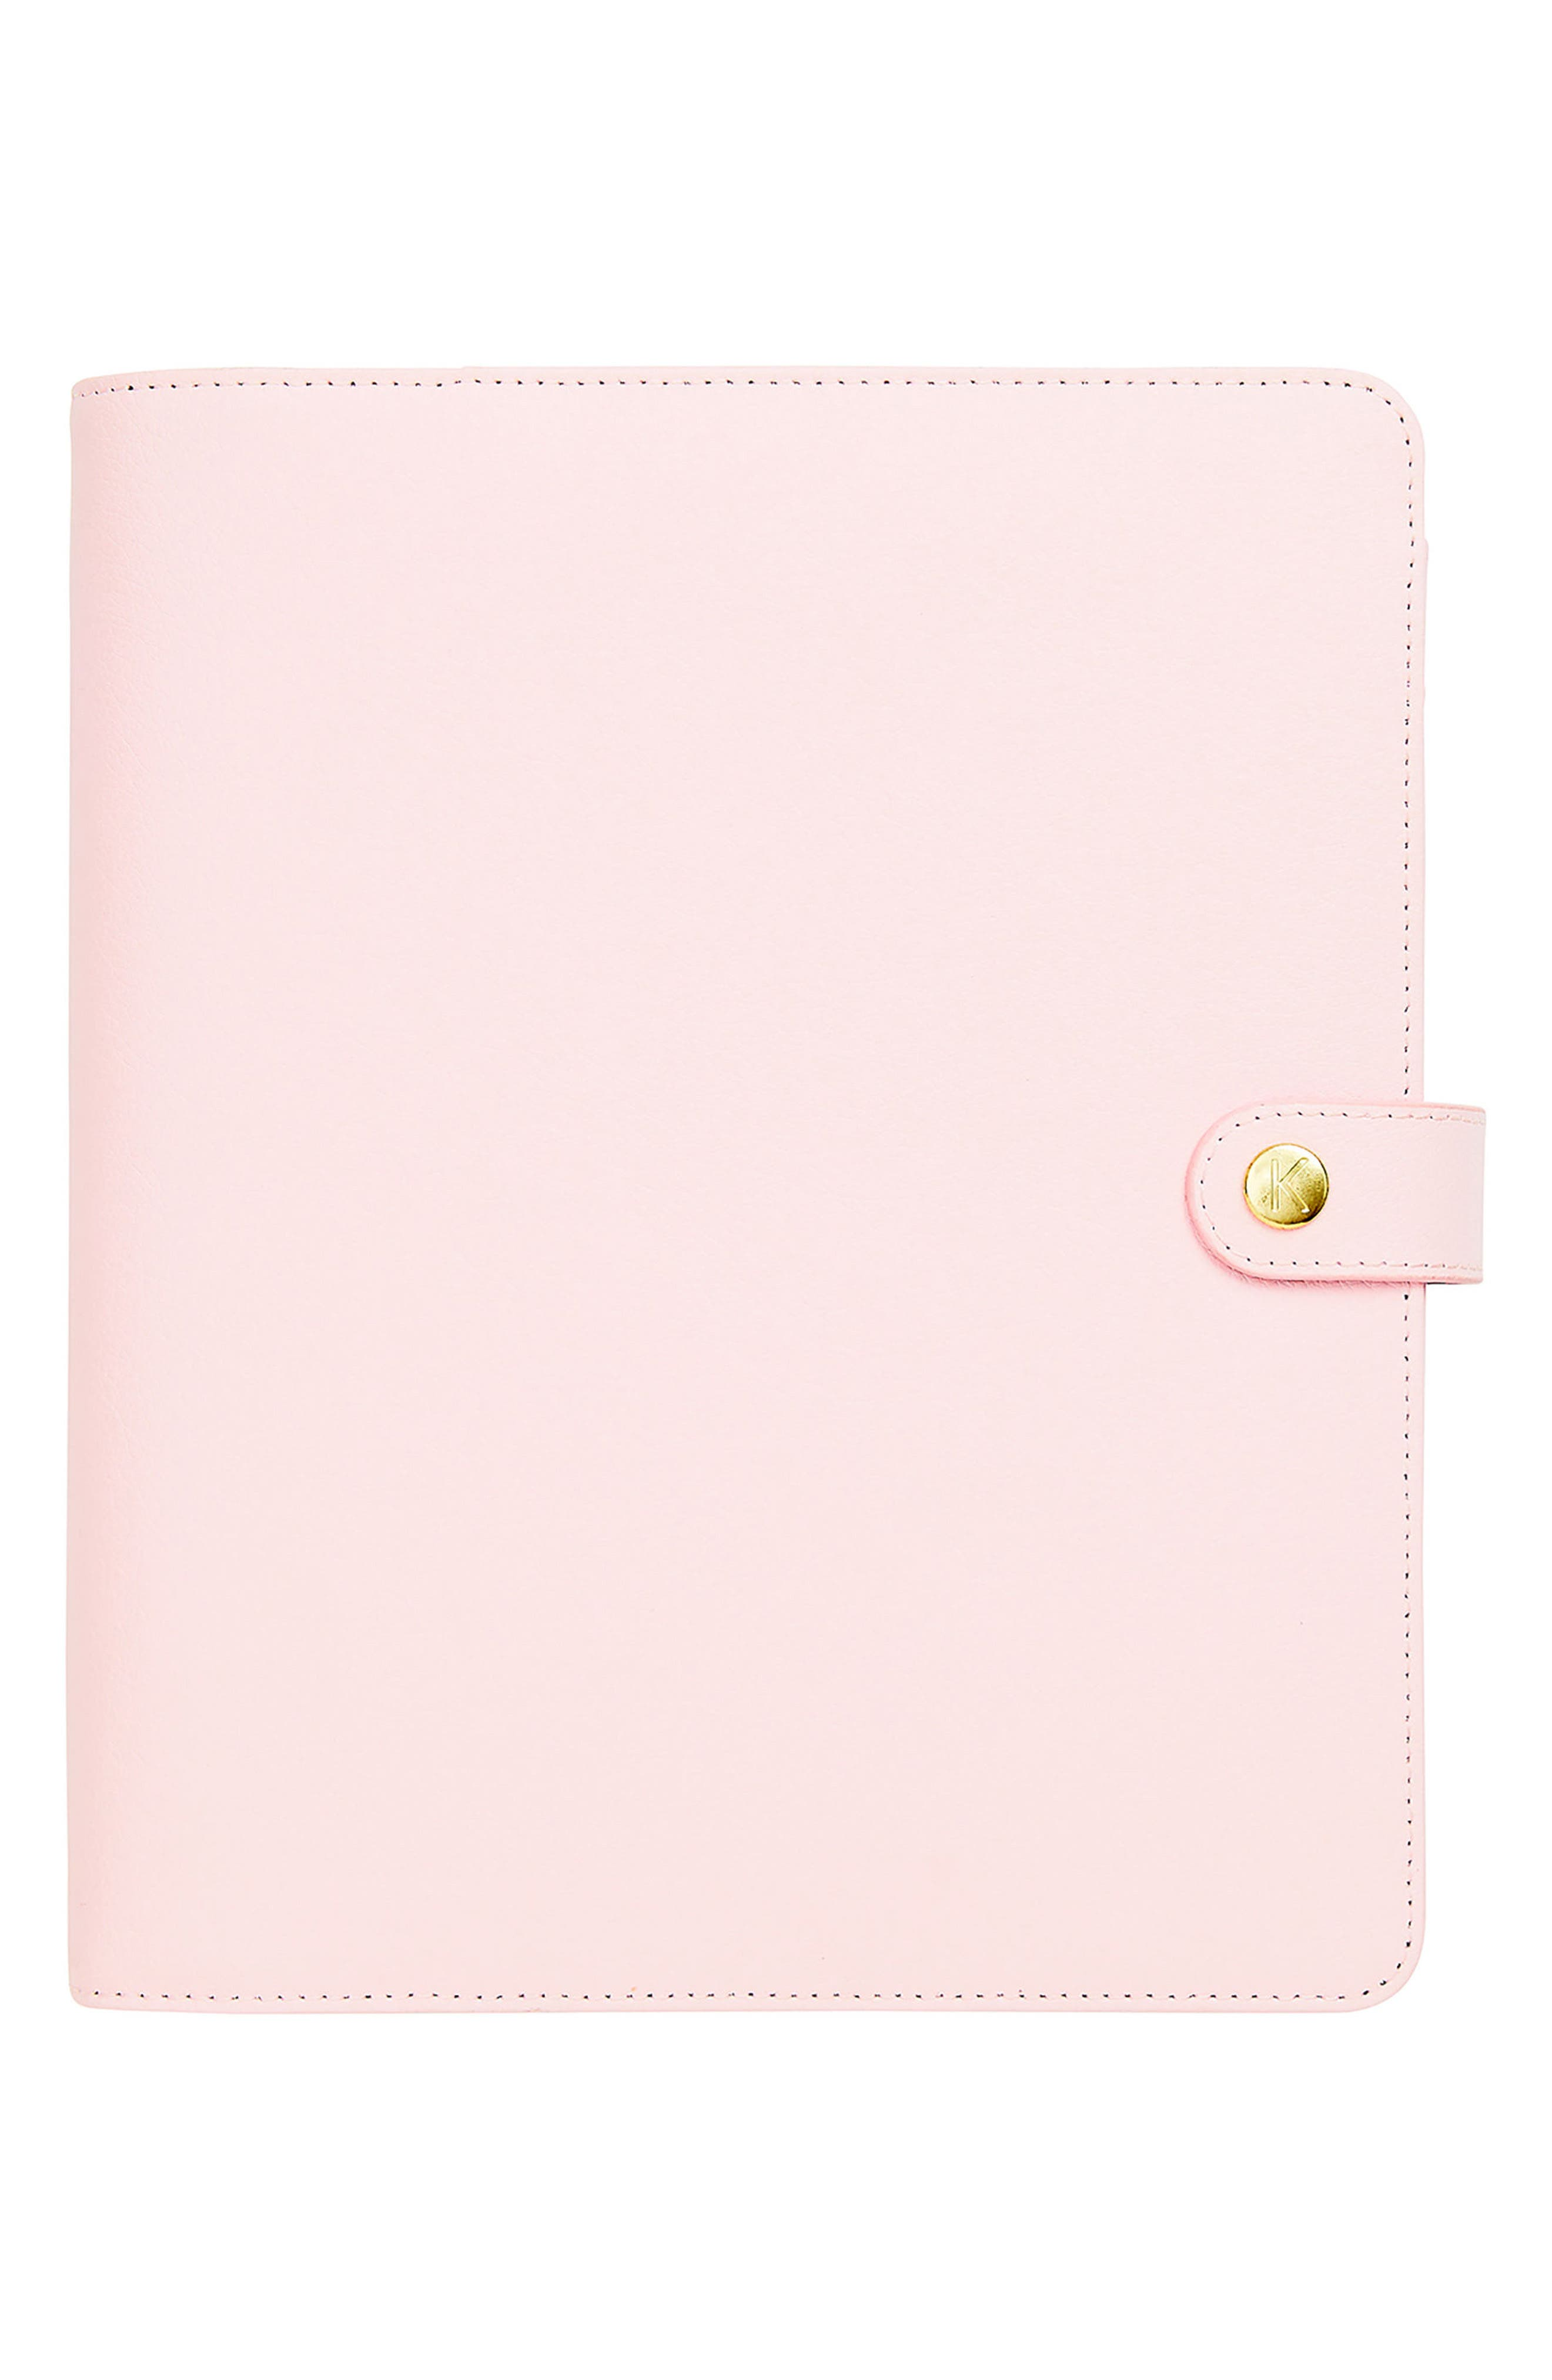 Leather 18-Month Perpetual Planner,                             Main thumbnail 1, color,                             653